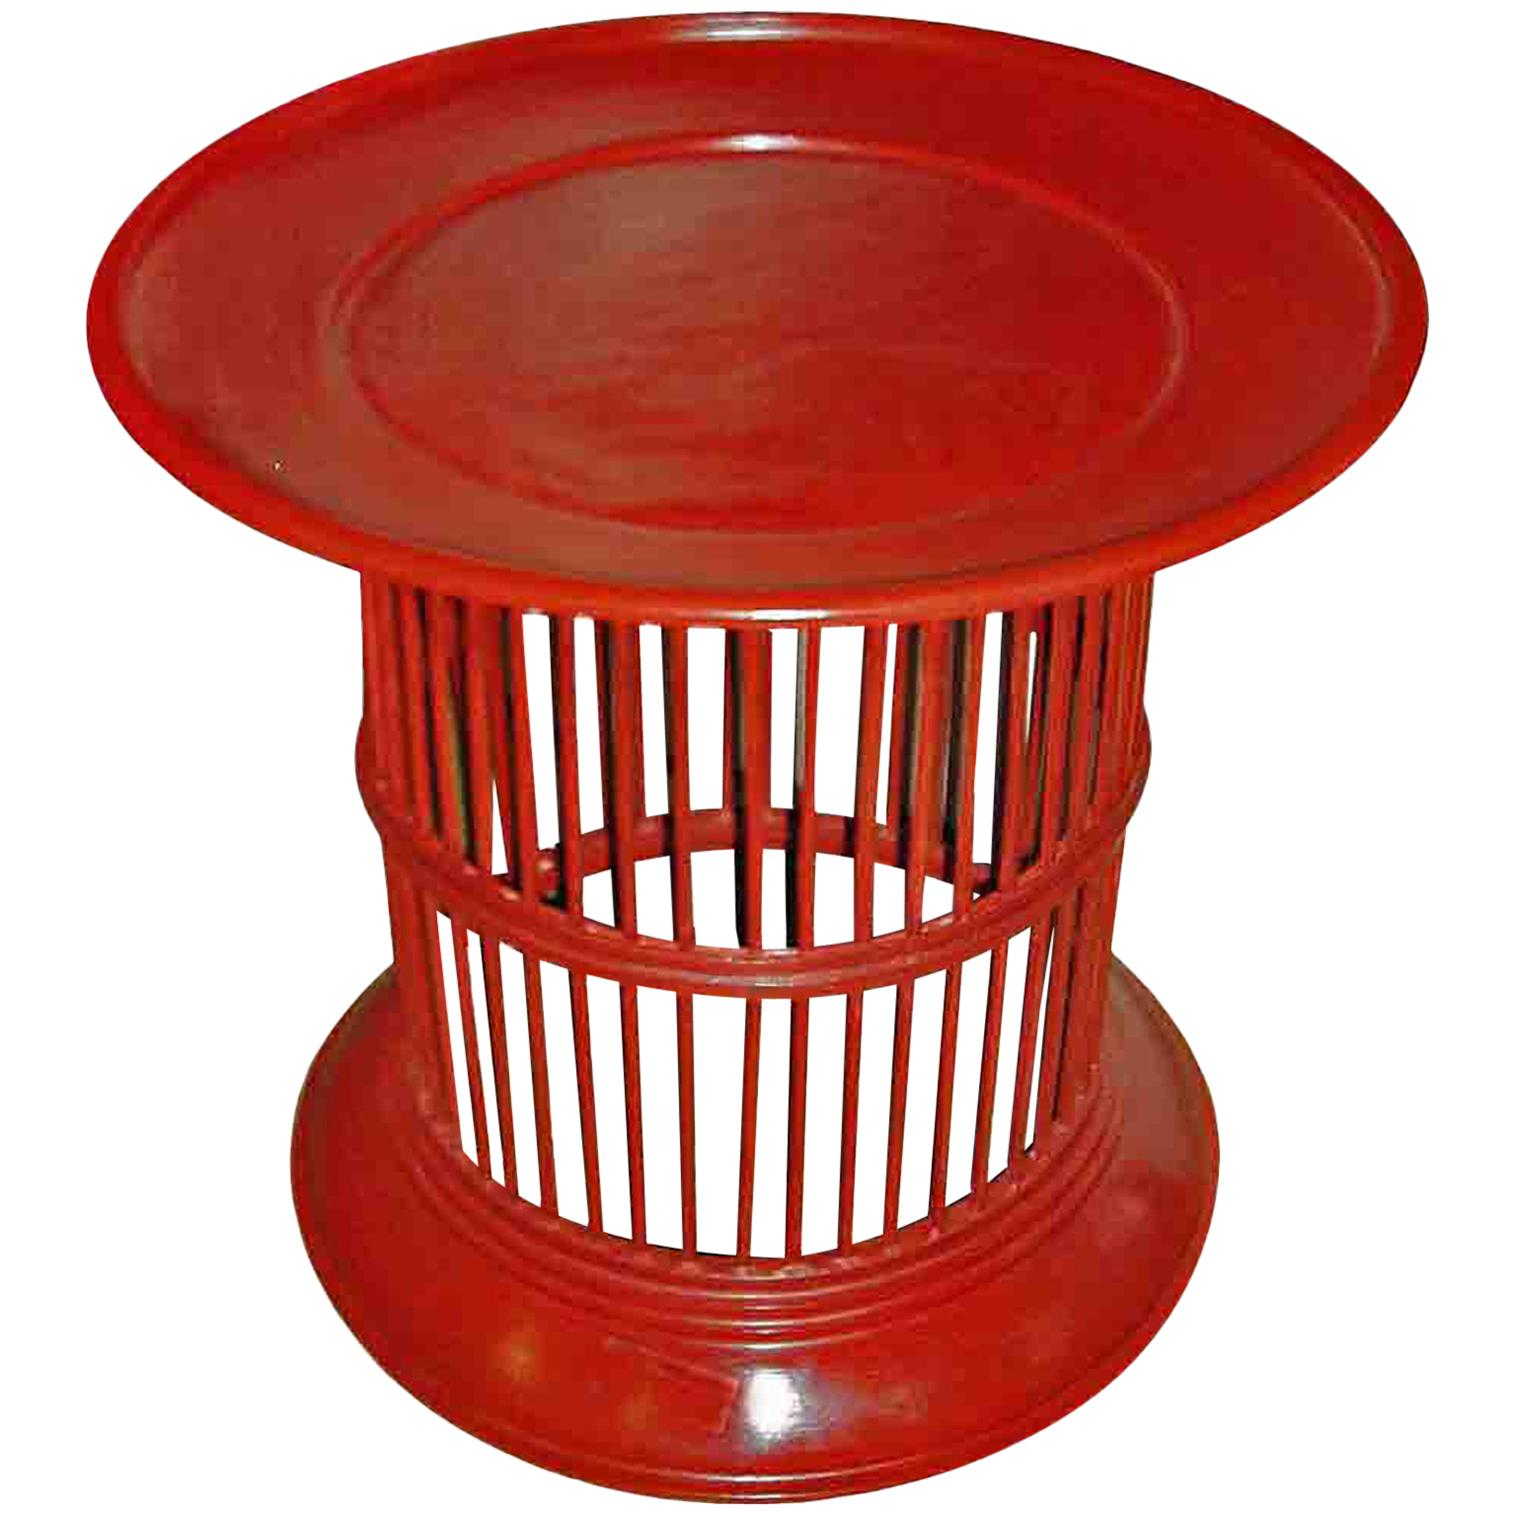 Lacquered Bamboo Drum Table From Thailand, In Red Or Green